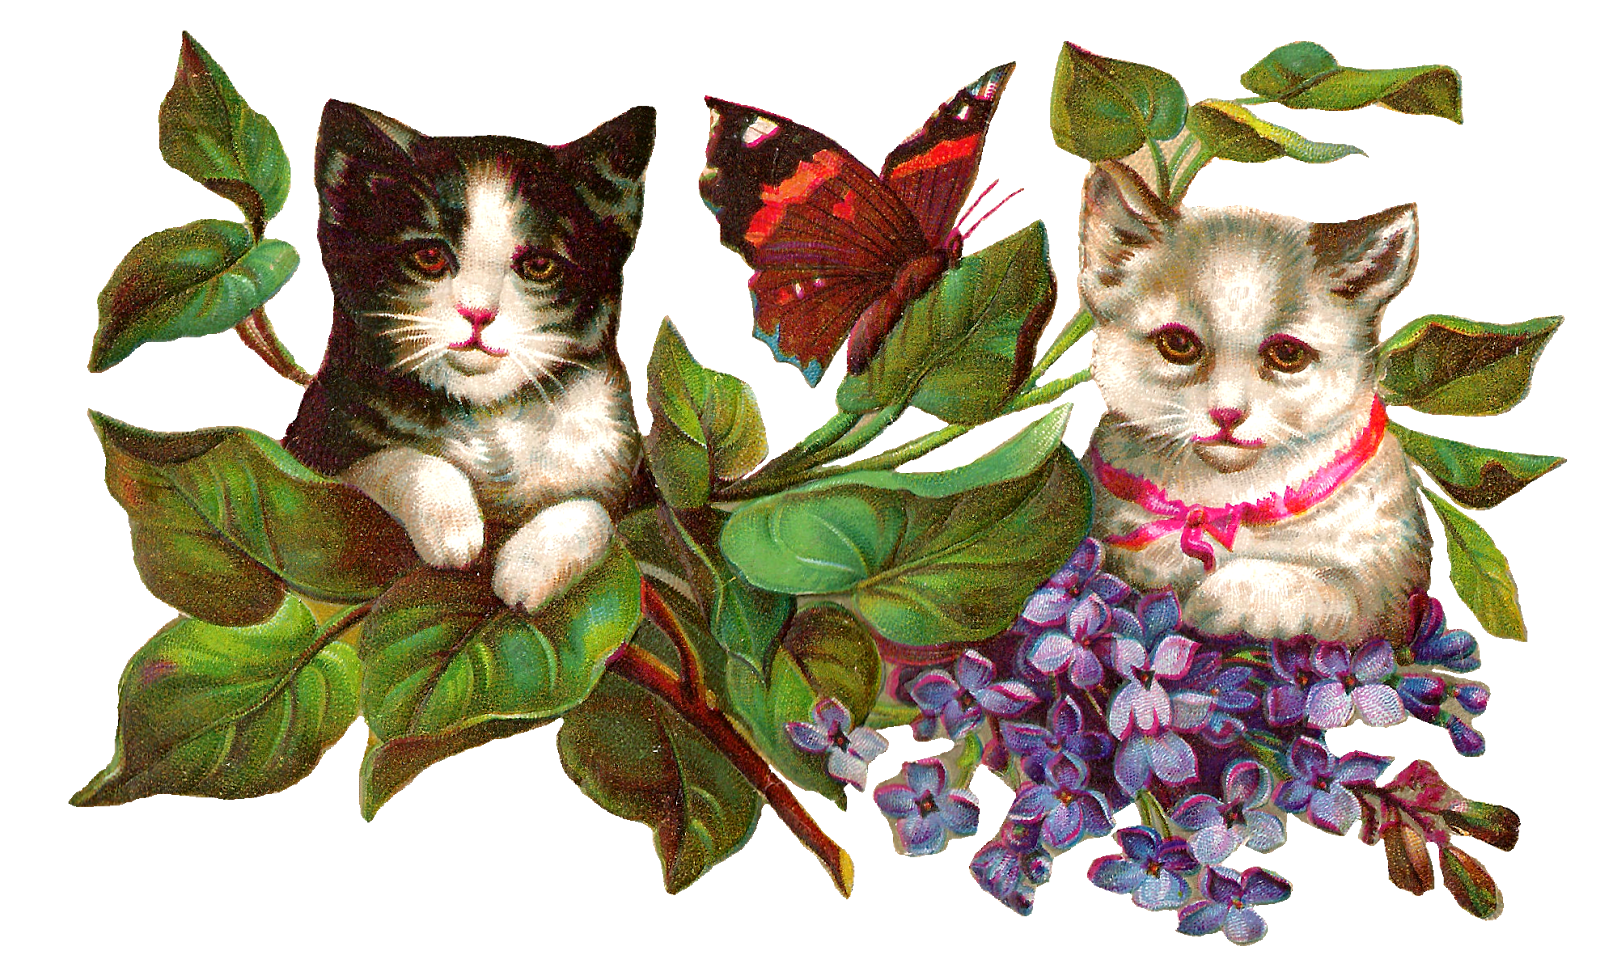 Antique images image wisteria. Cat clip art vintage picture free library